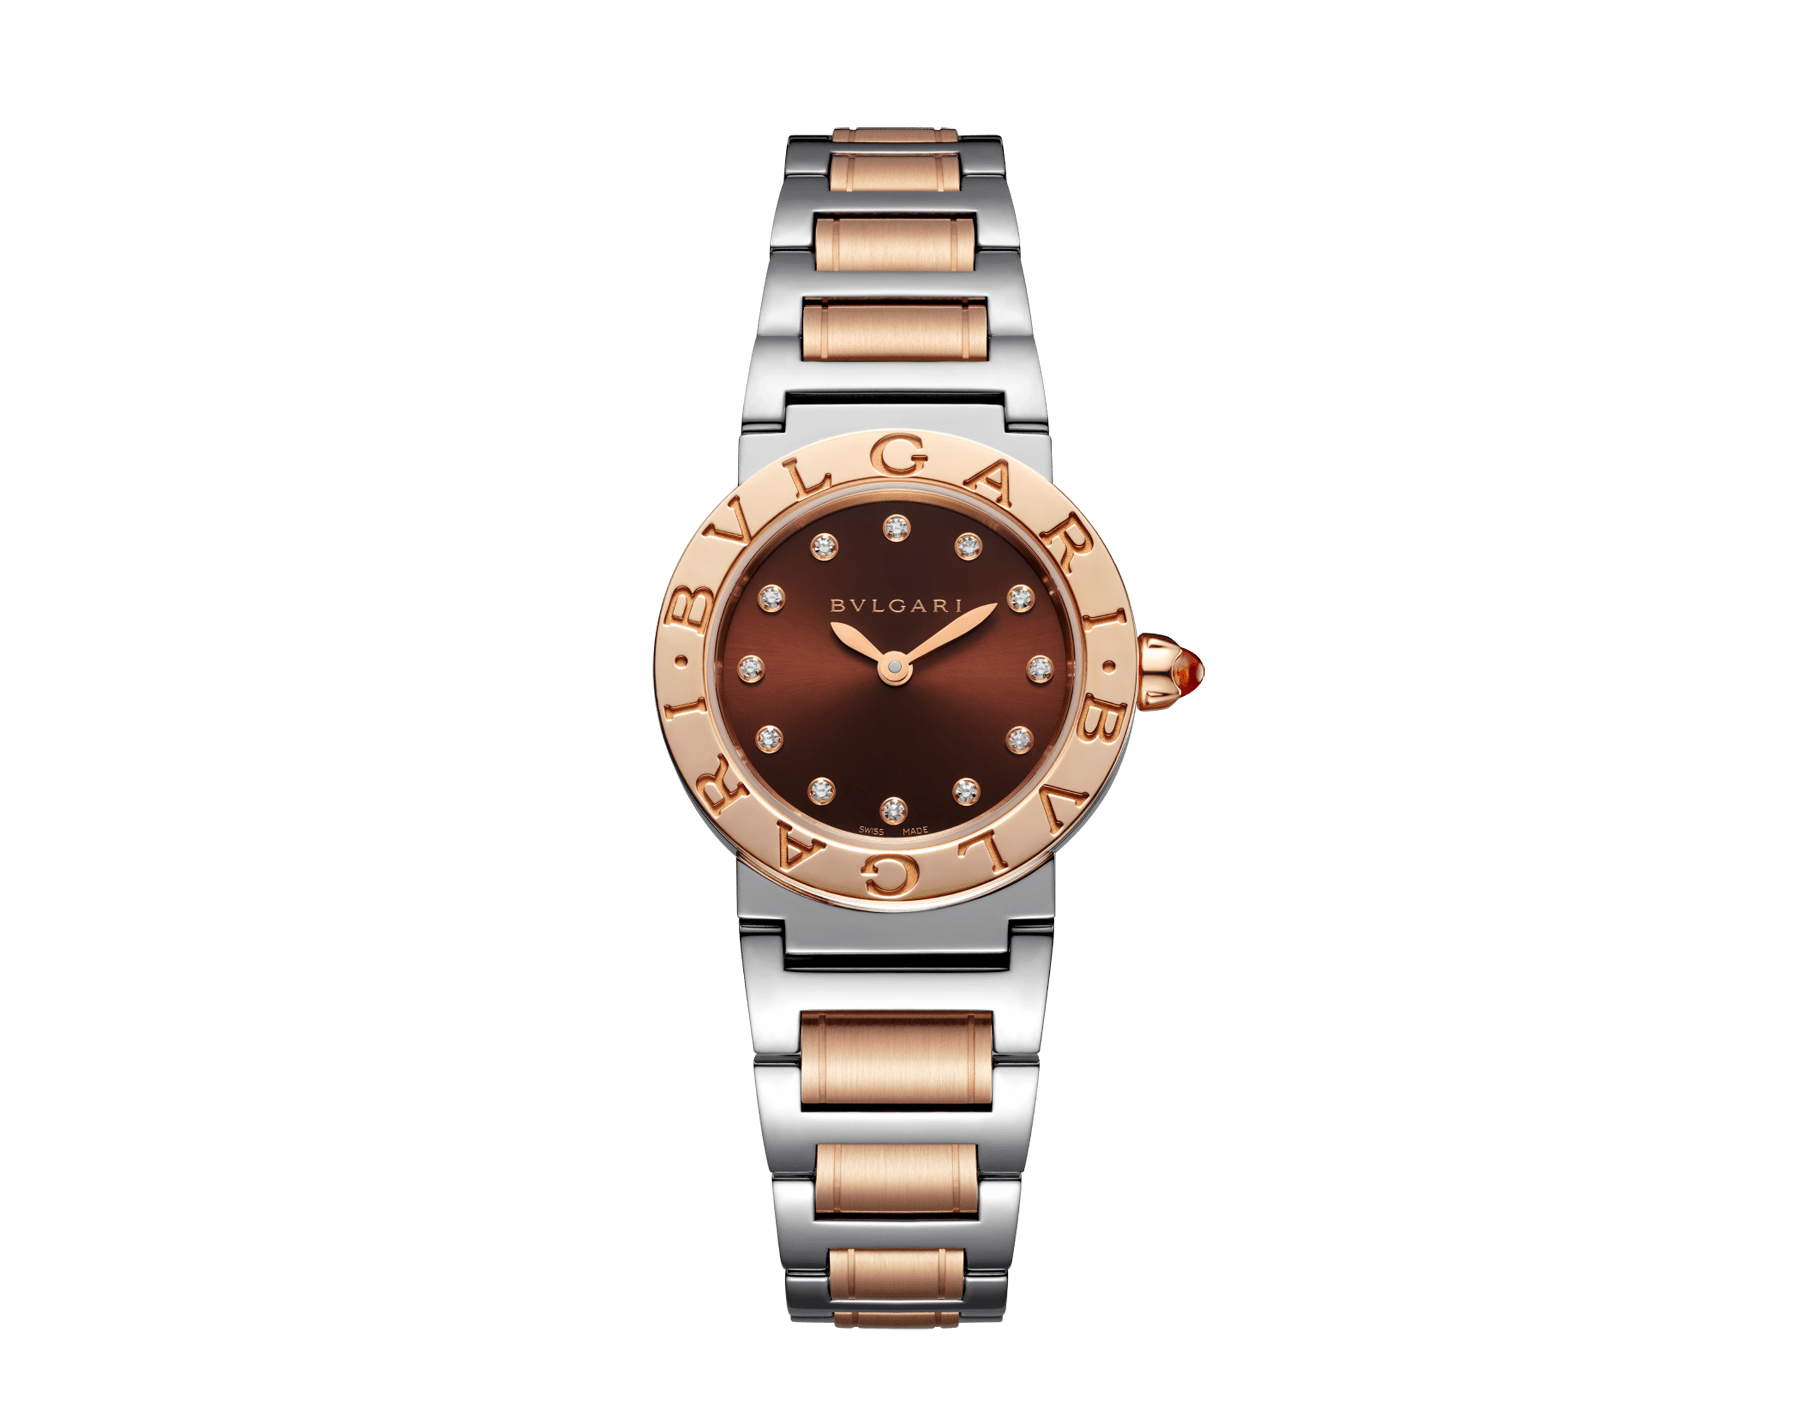 BVLGARI BVLGARI watch in stainless steel and 18 kt rose gold case and bracelet, with brown soleil lacquered dial and diamond indexes. Small model 102155 image 1